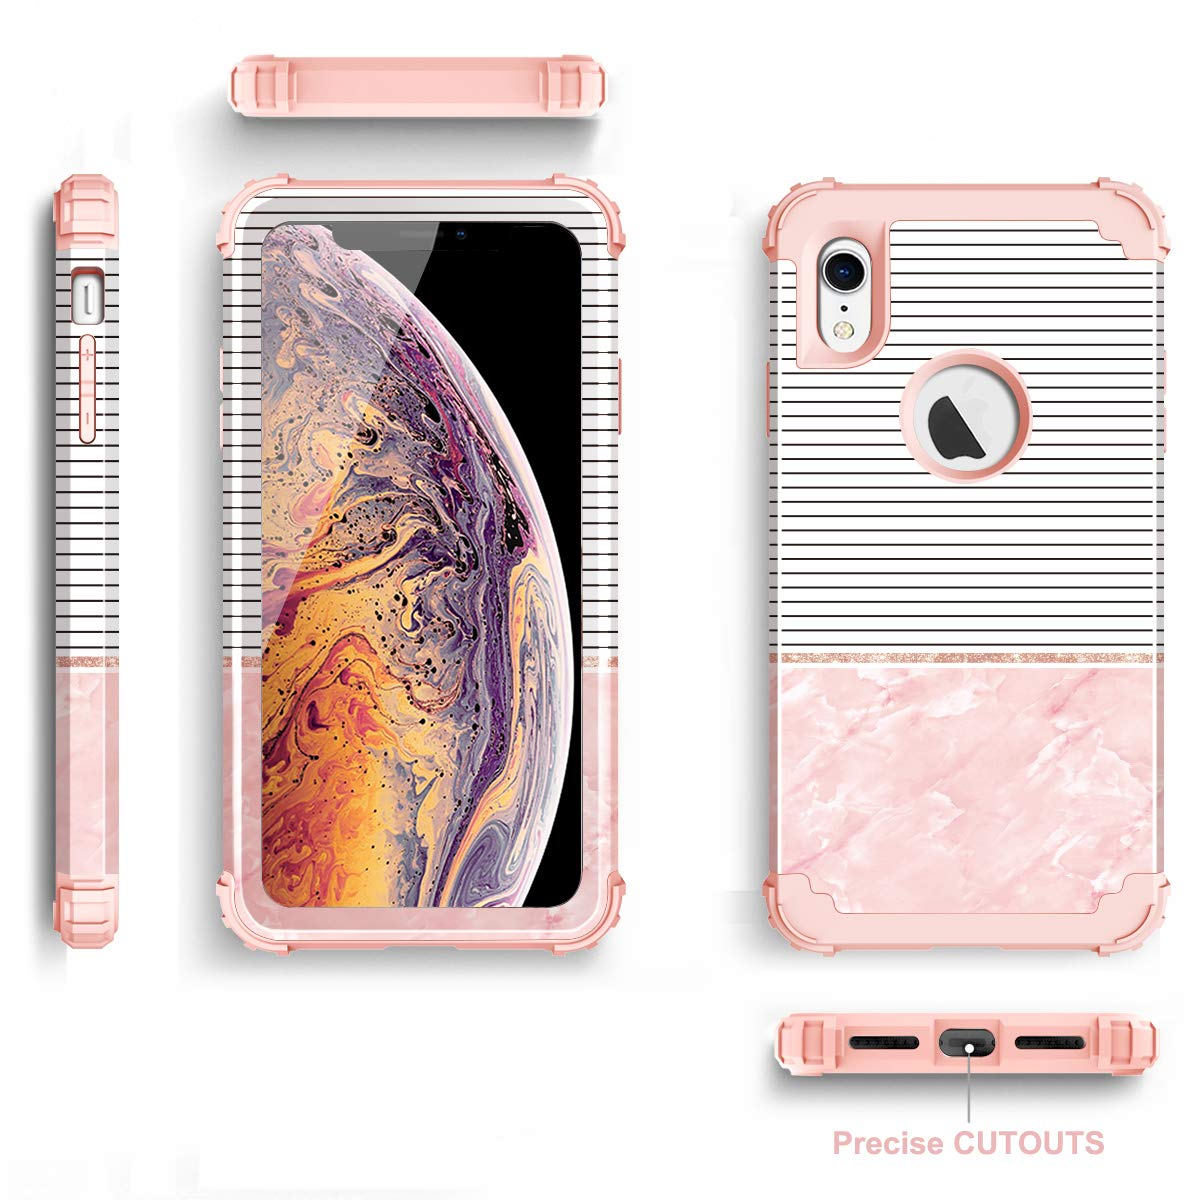 Fingic iPhone XR Case 6.1 inch Luxury Glitter Stripes Design Case 3 in 1 Heavy Duty Hybrid Shock Absorbing /& Scratch Resistant Rubber Bumper Full-Body Protective Cover Case for iPhone XR 2018 Pink